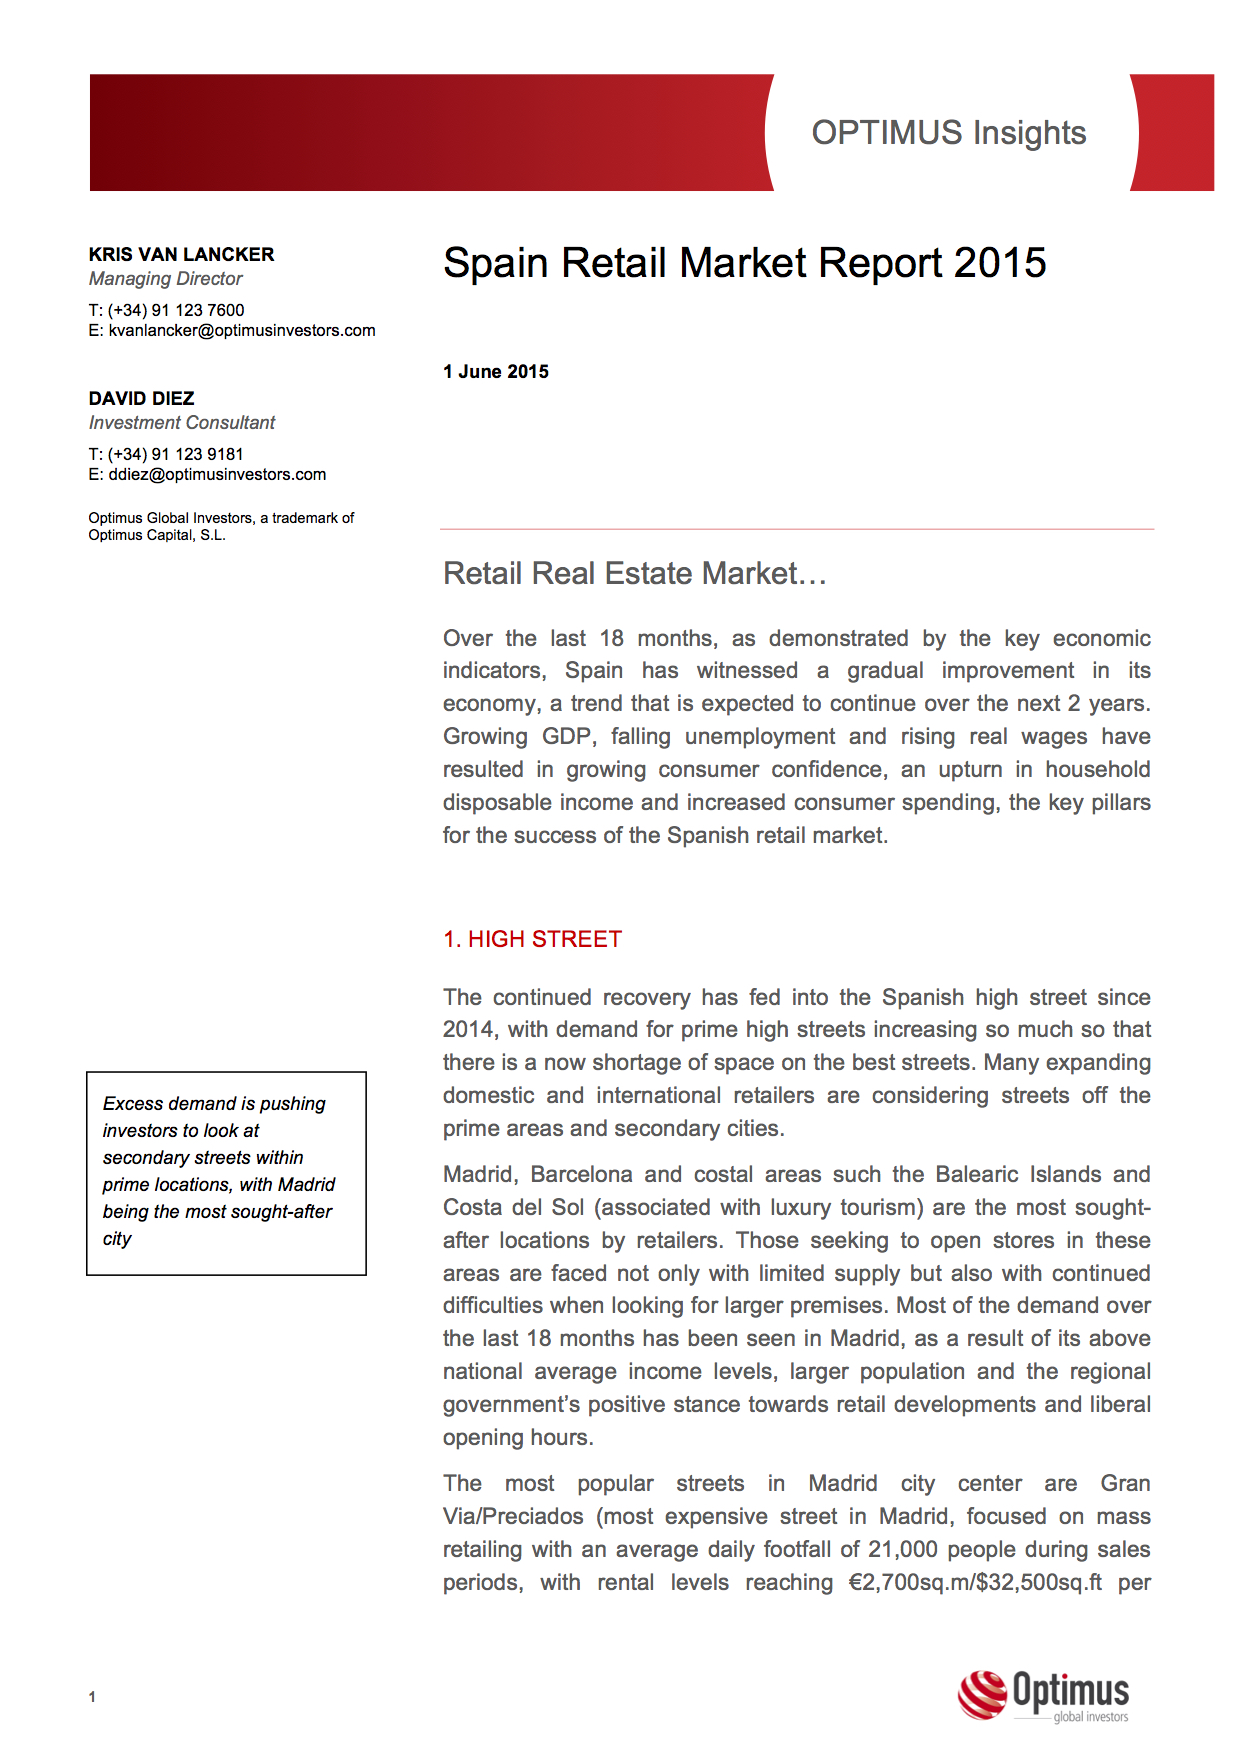 Optimus Global Investors - Commercial Real Estate and Alternative Investments in Spain - Retail Market